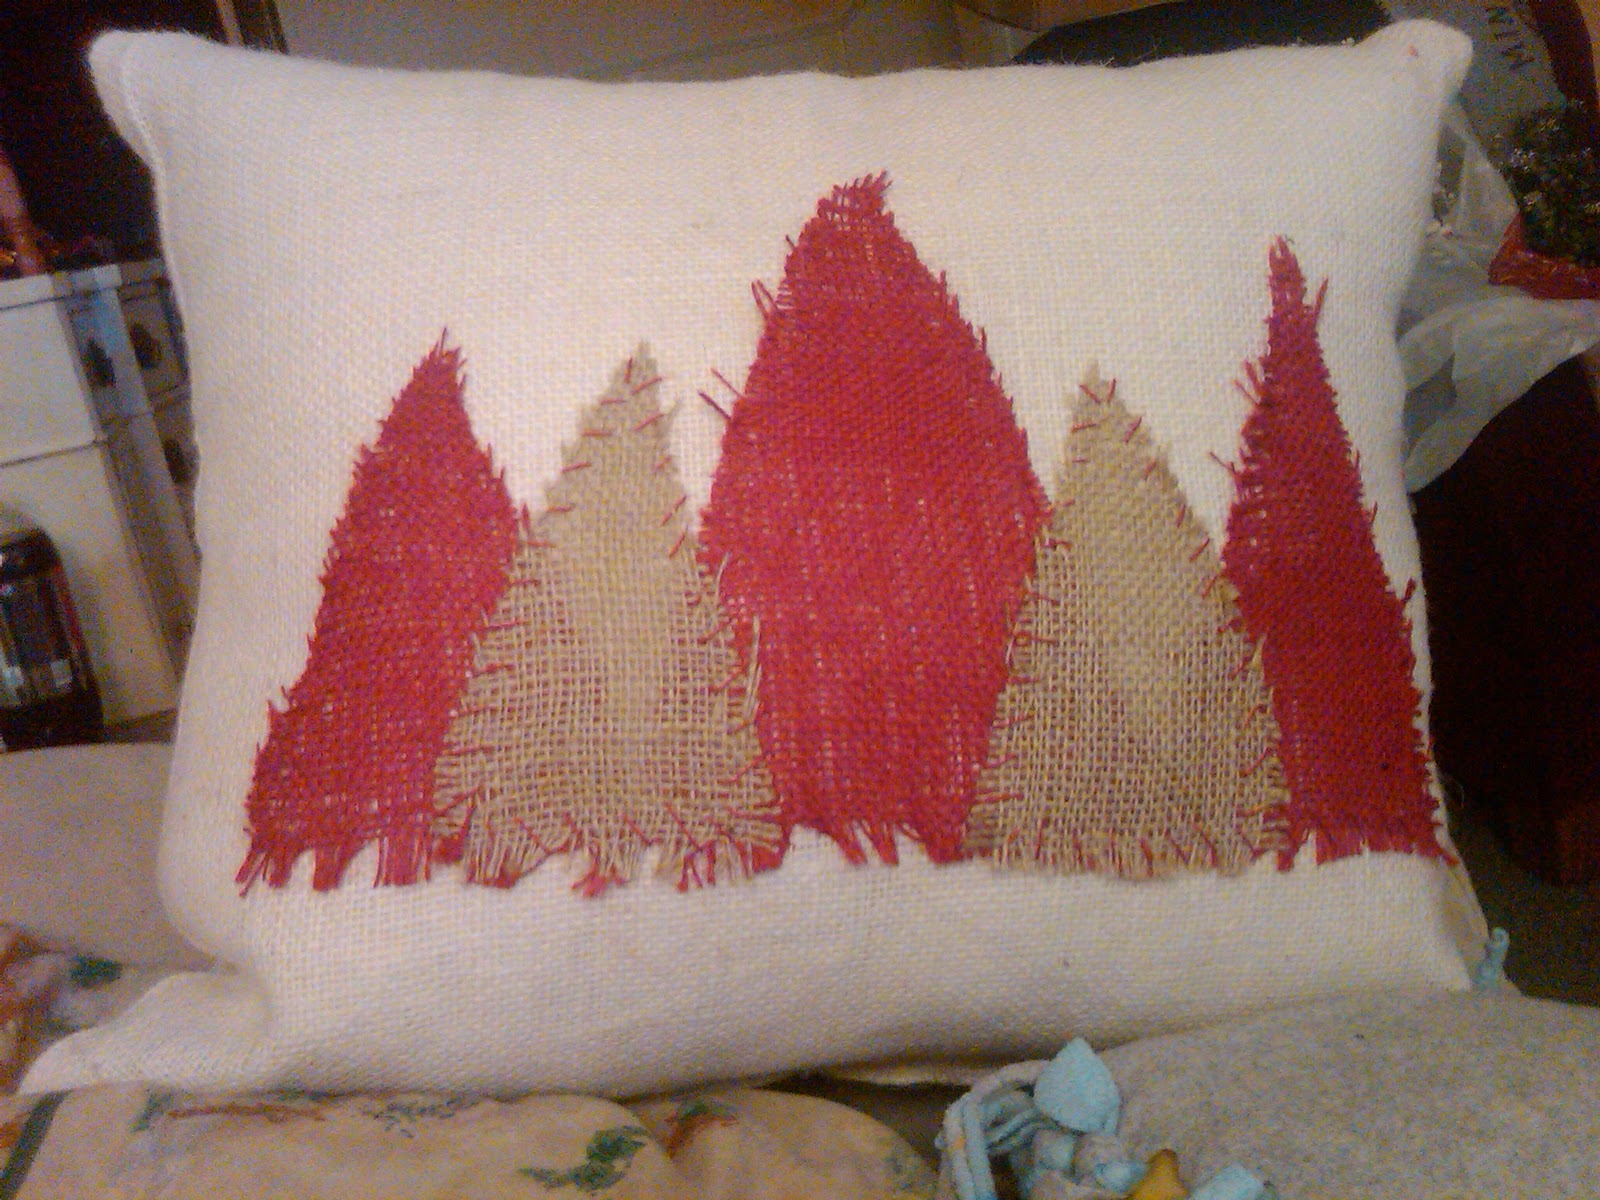 Country Style Accents: Christmas Pillows out of burlap